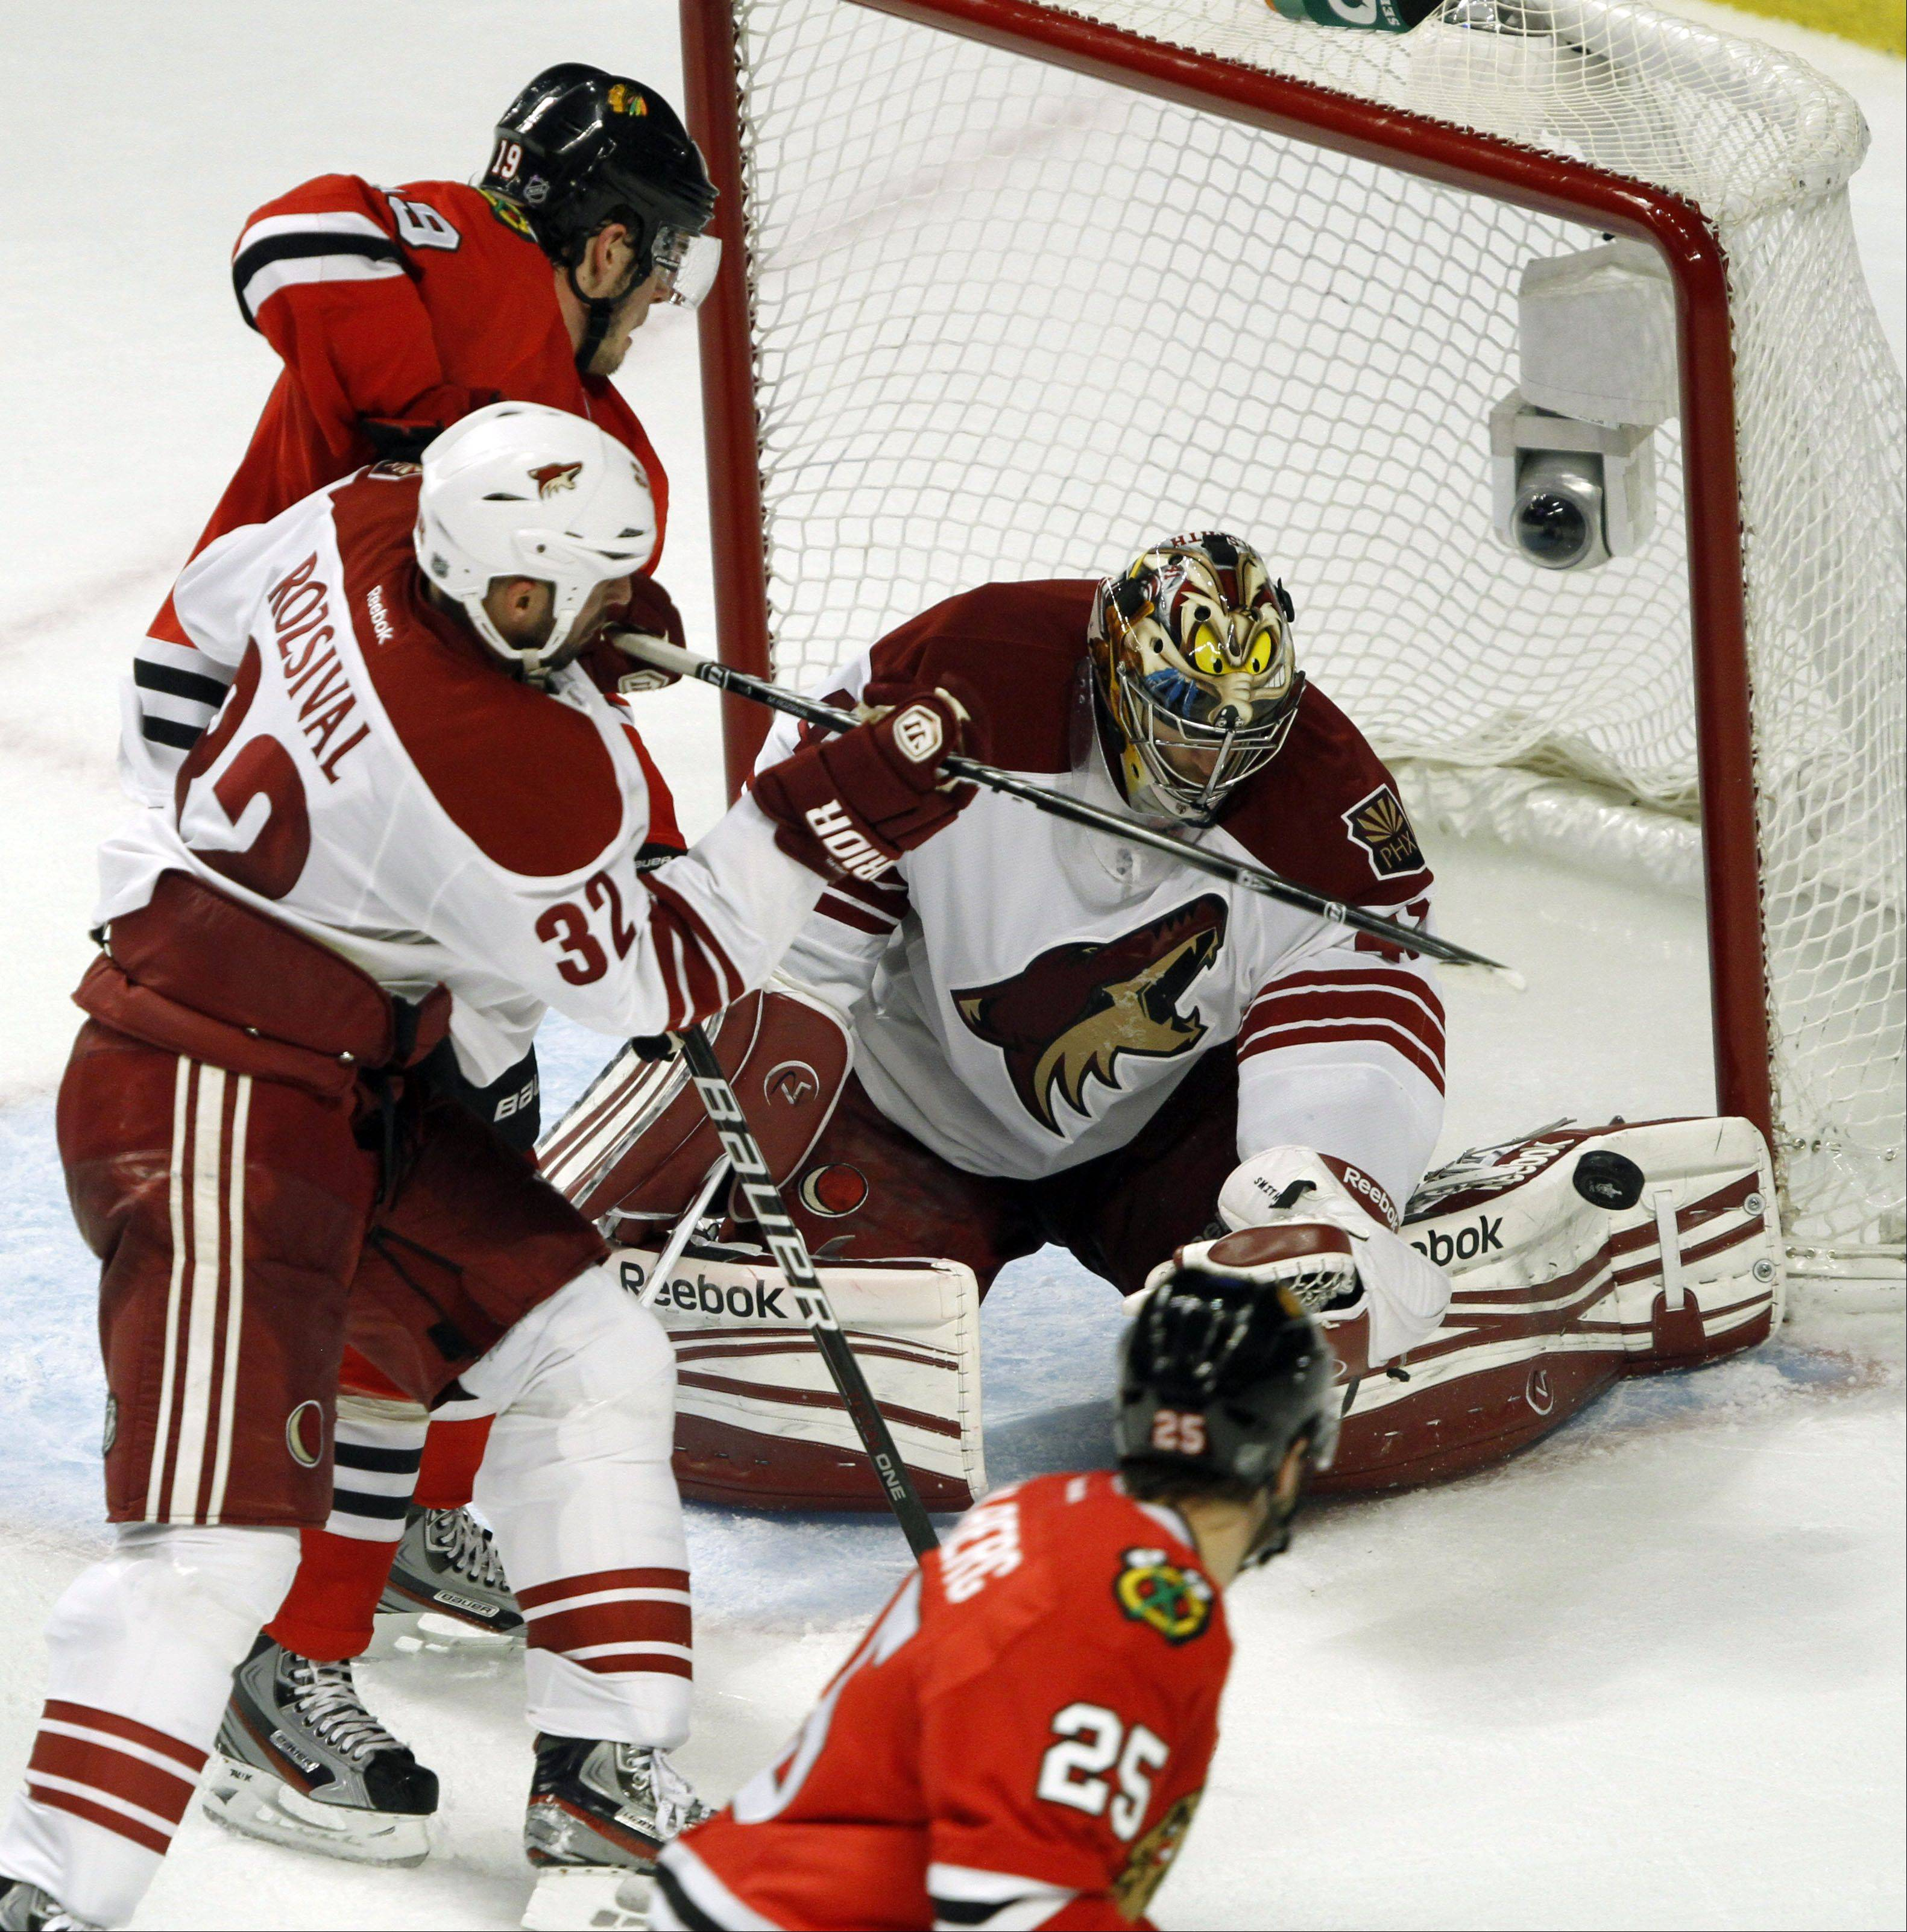 Chicago Blackhawks' center Jonathan Toews gets an opportunity but Phoenix Coyotes goalie Mike Smith makes the save.